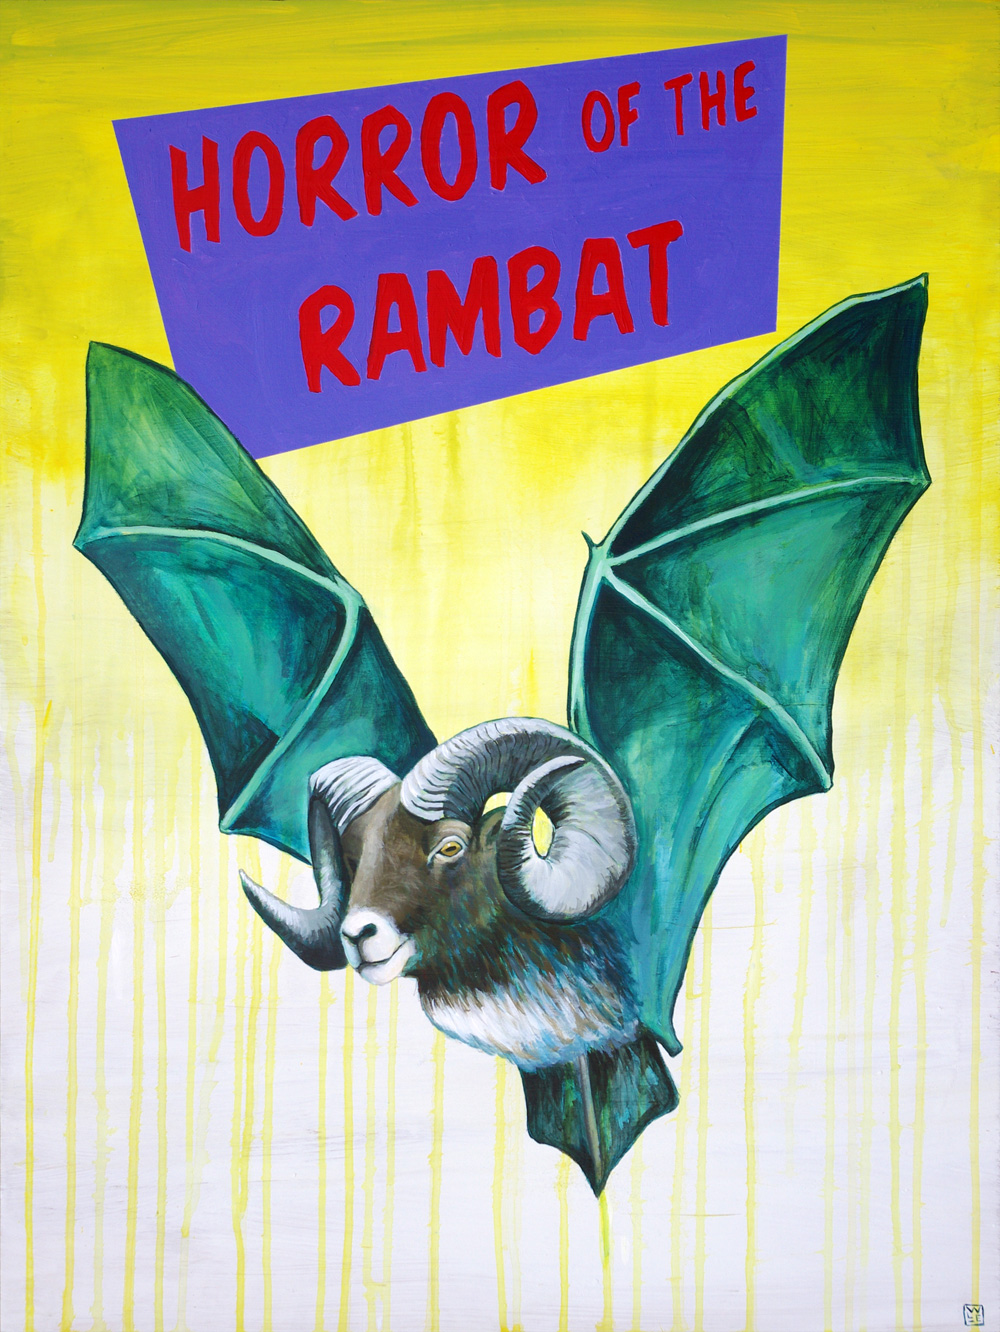 Haiku Tuesday: Horror Of The Rambat